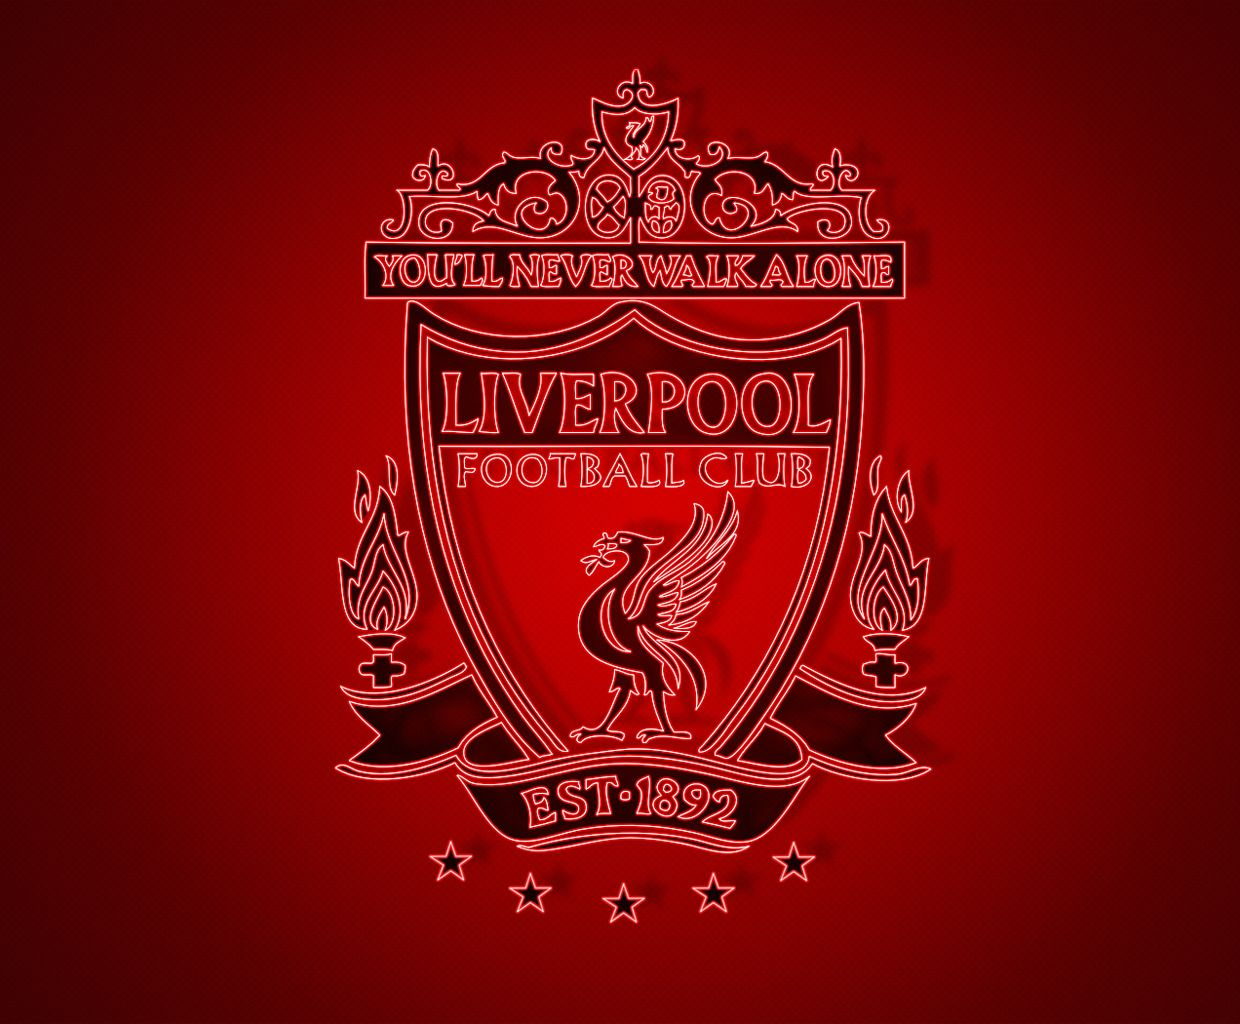 Wallpaper iphone liverpool - Nice Awesome Liverpool Fc Logo Wallpaper Hd Liverpool Logo 1920 1080 Liverpool Wallpapers Hd